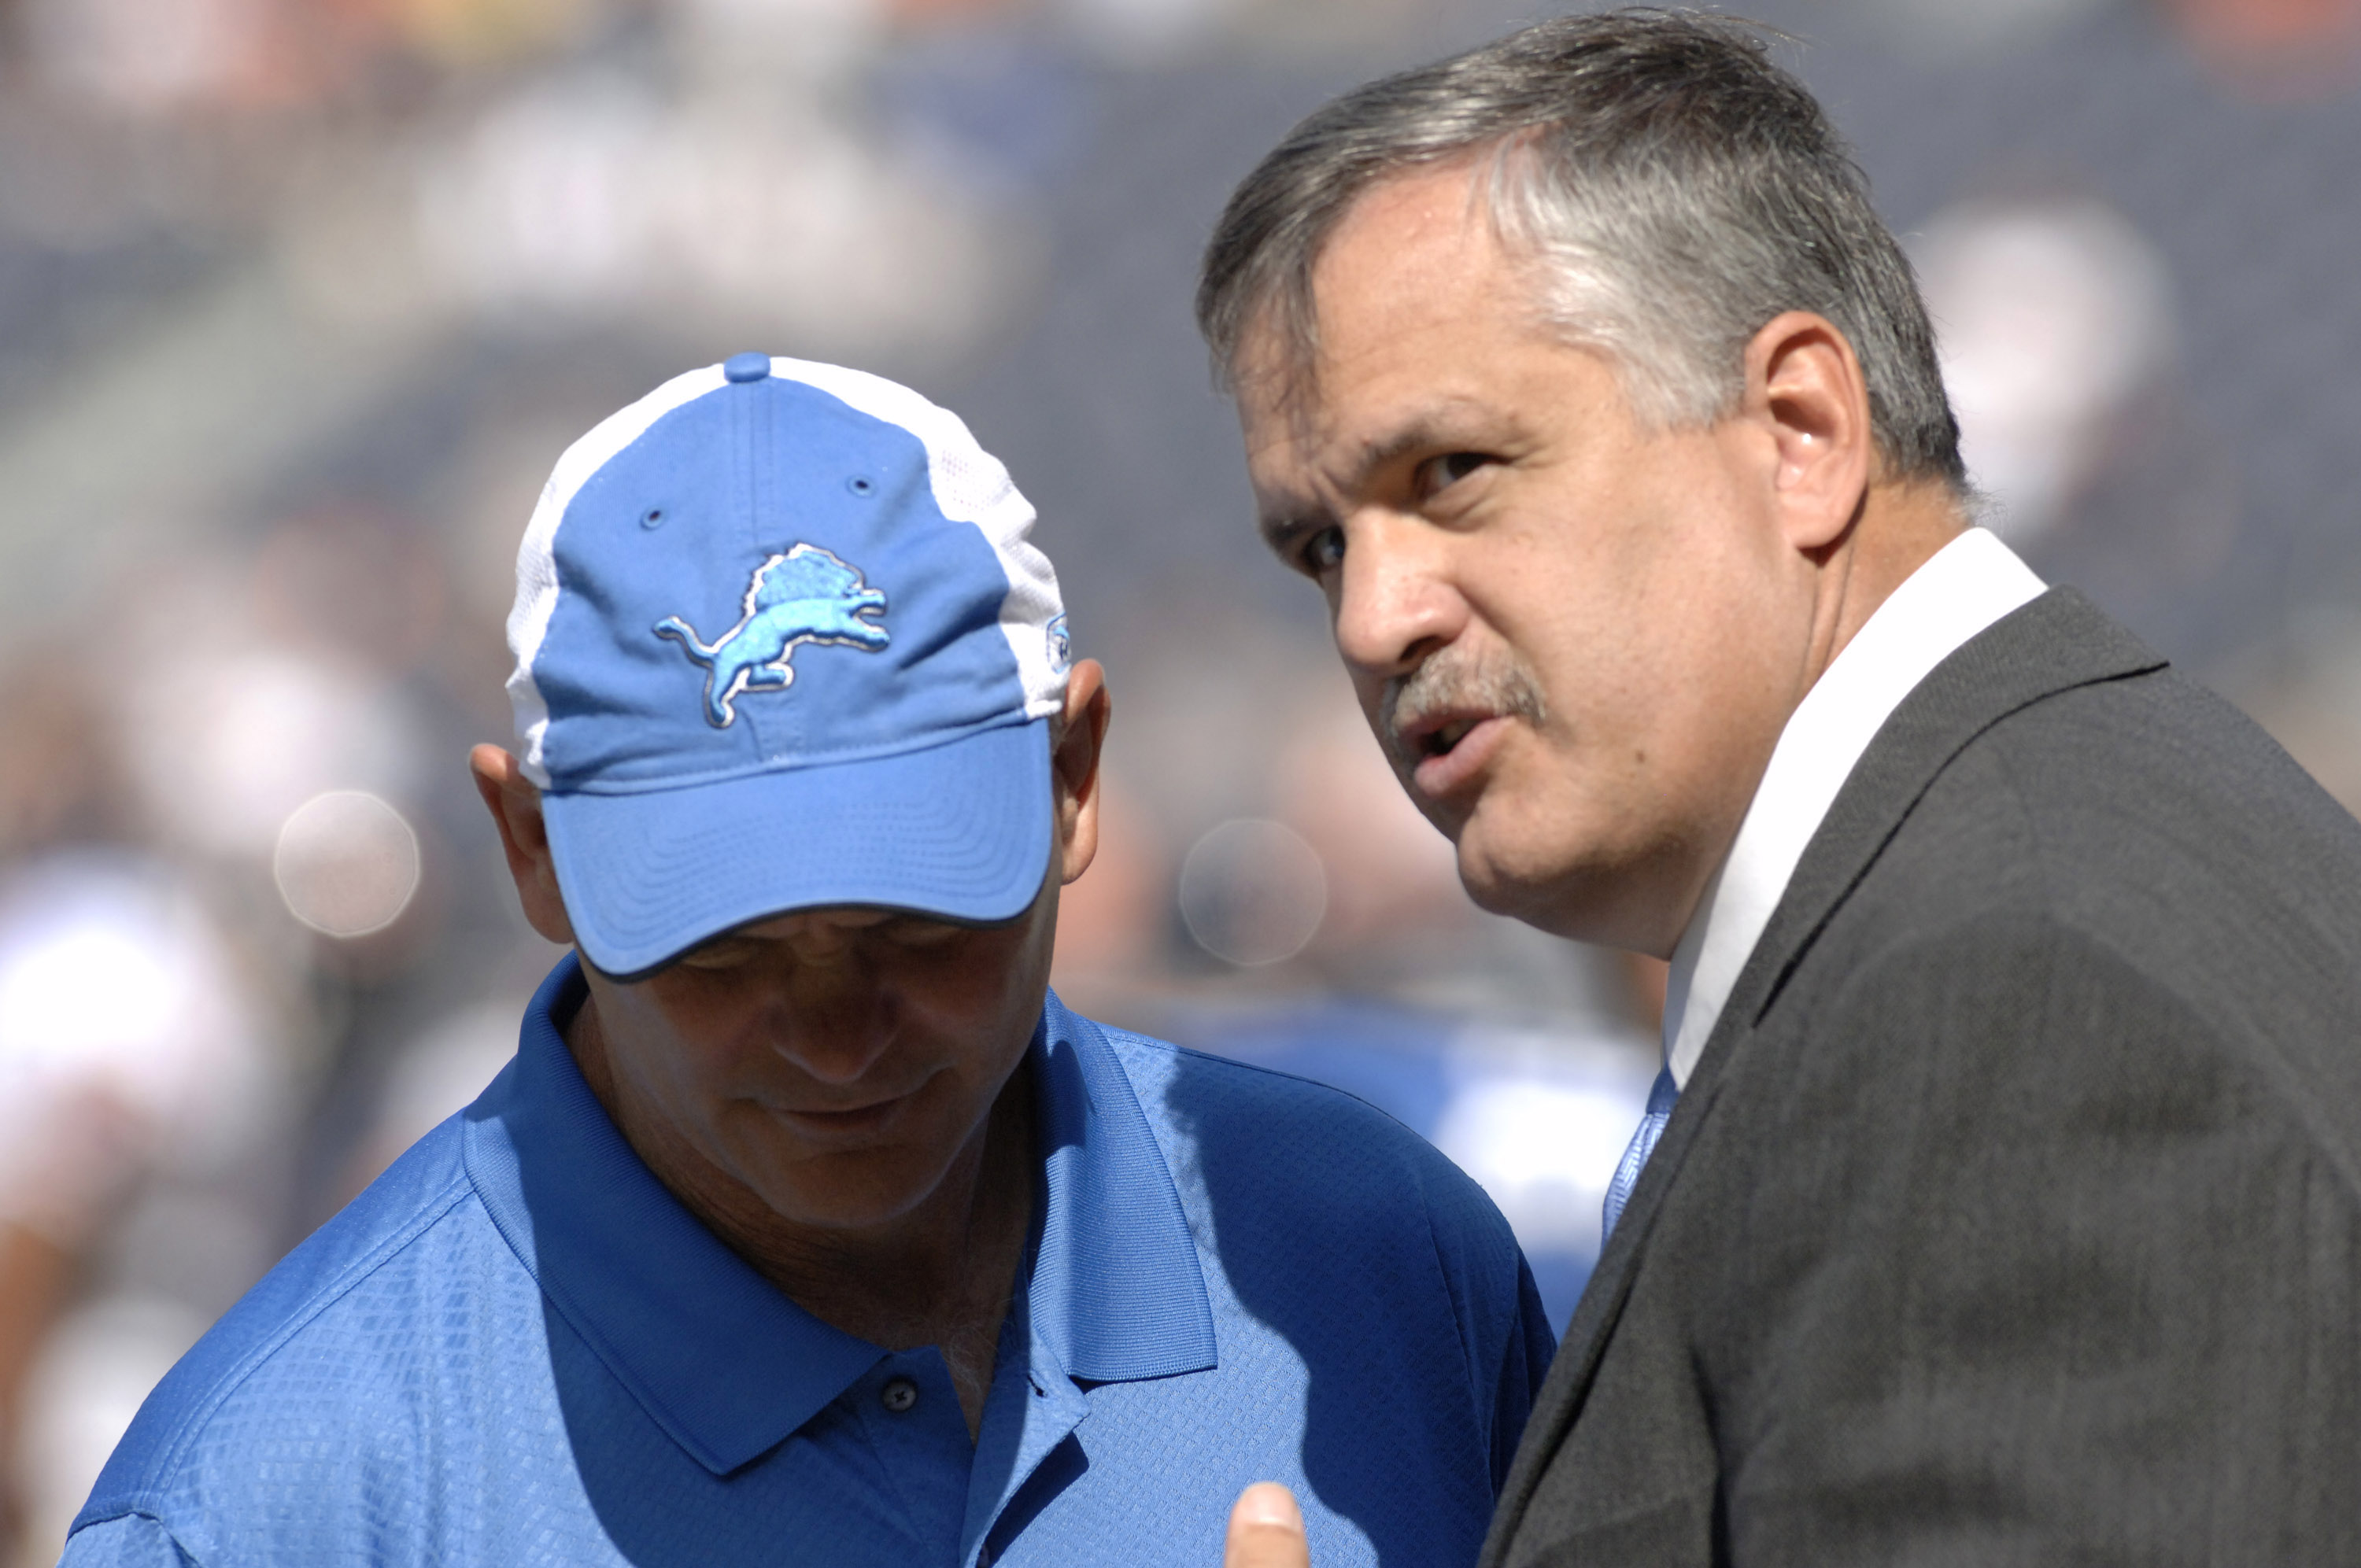 Detroit Lions president Matt Millen with coach Ron Marinelli on the sidelines during a game between the Chicago Bears and Detroit Lions at Soldier Field in Chicago, Illinois on September 17, 2006.  The Bears won 34 - 7.  (Photo by Al Messerschmidt/Getty I